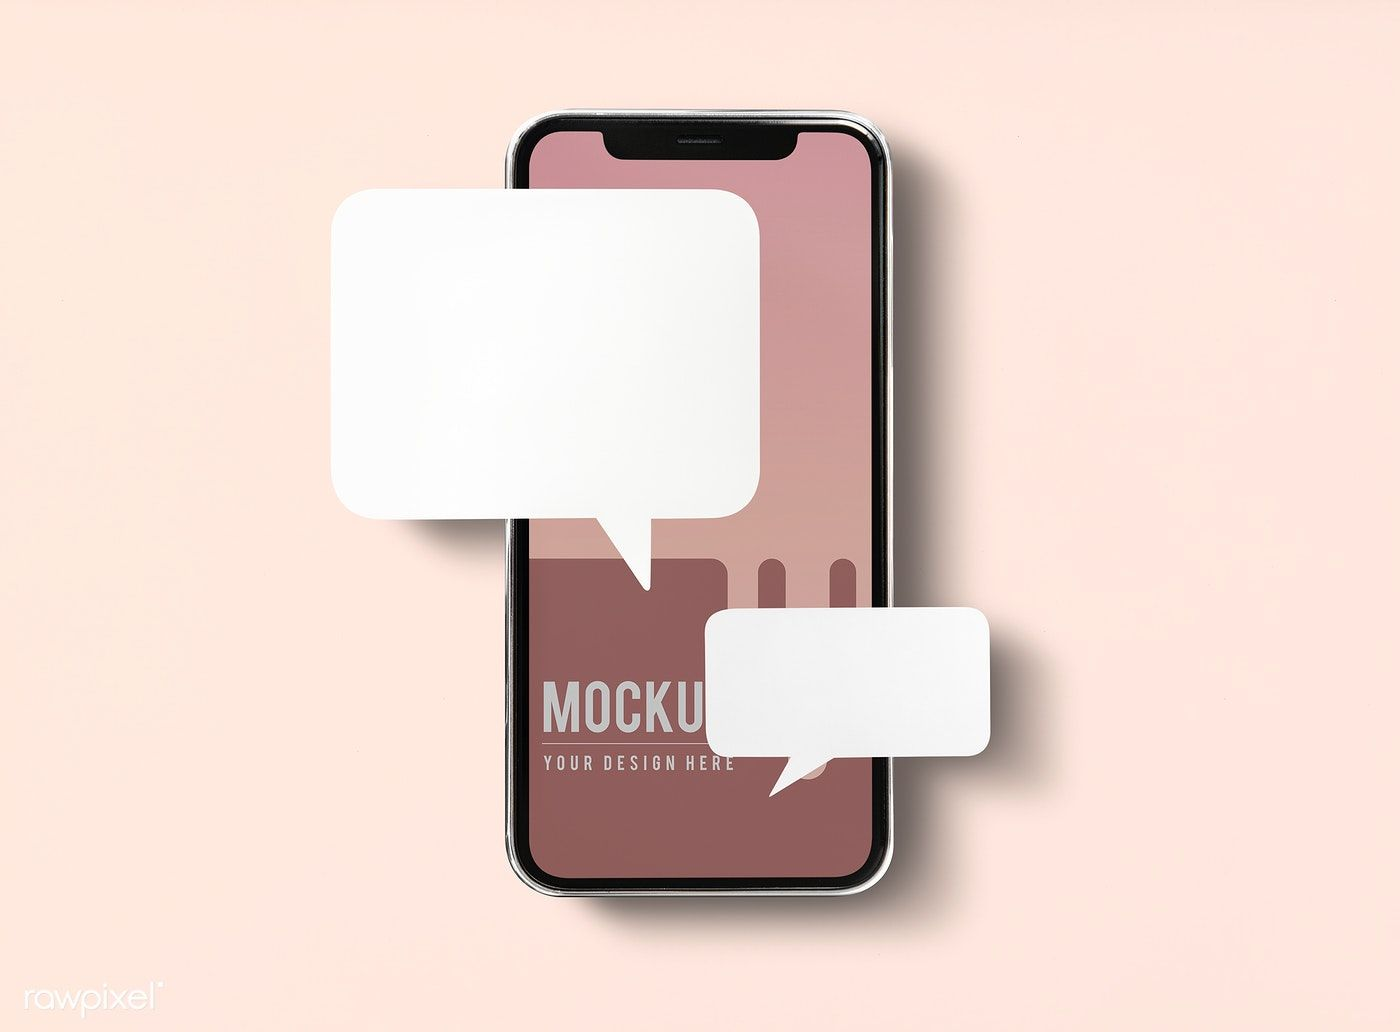 Chat messaging on mobile phone mockup free image by